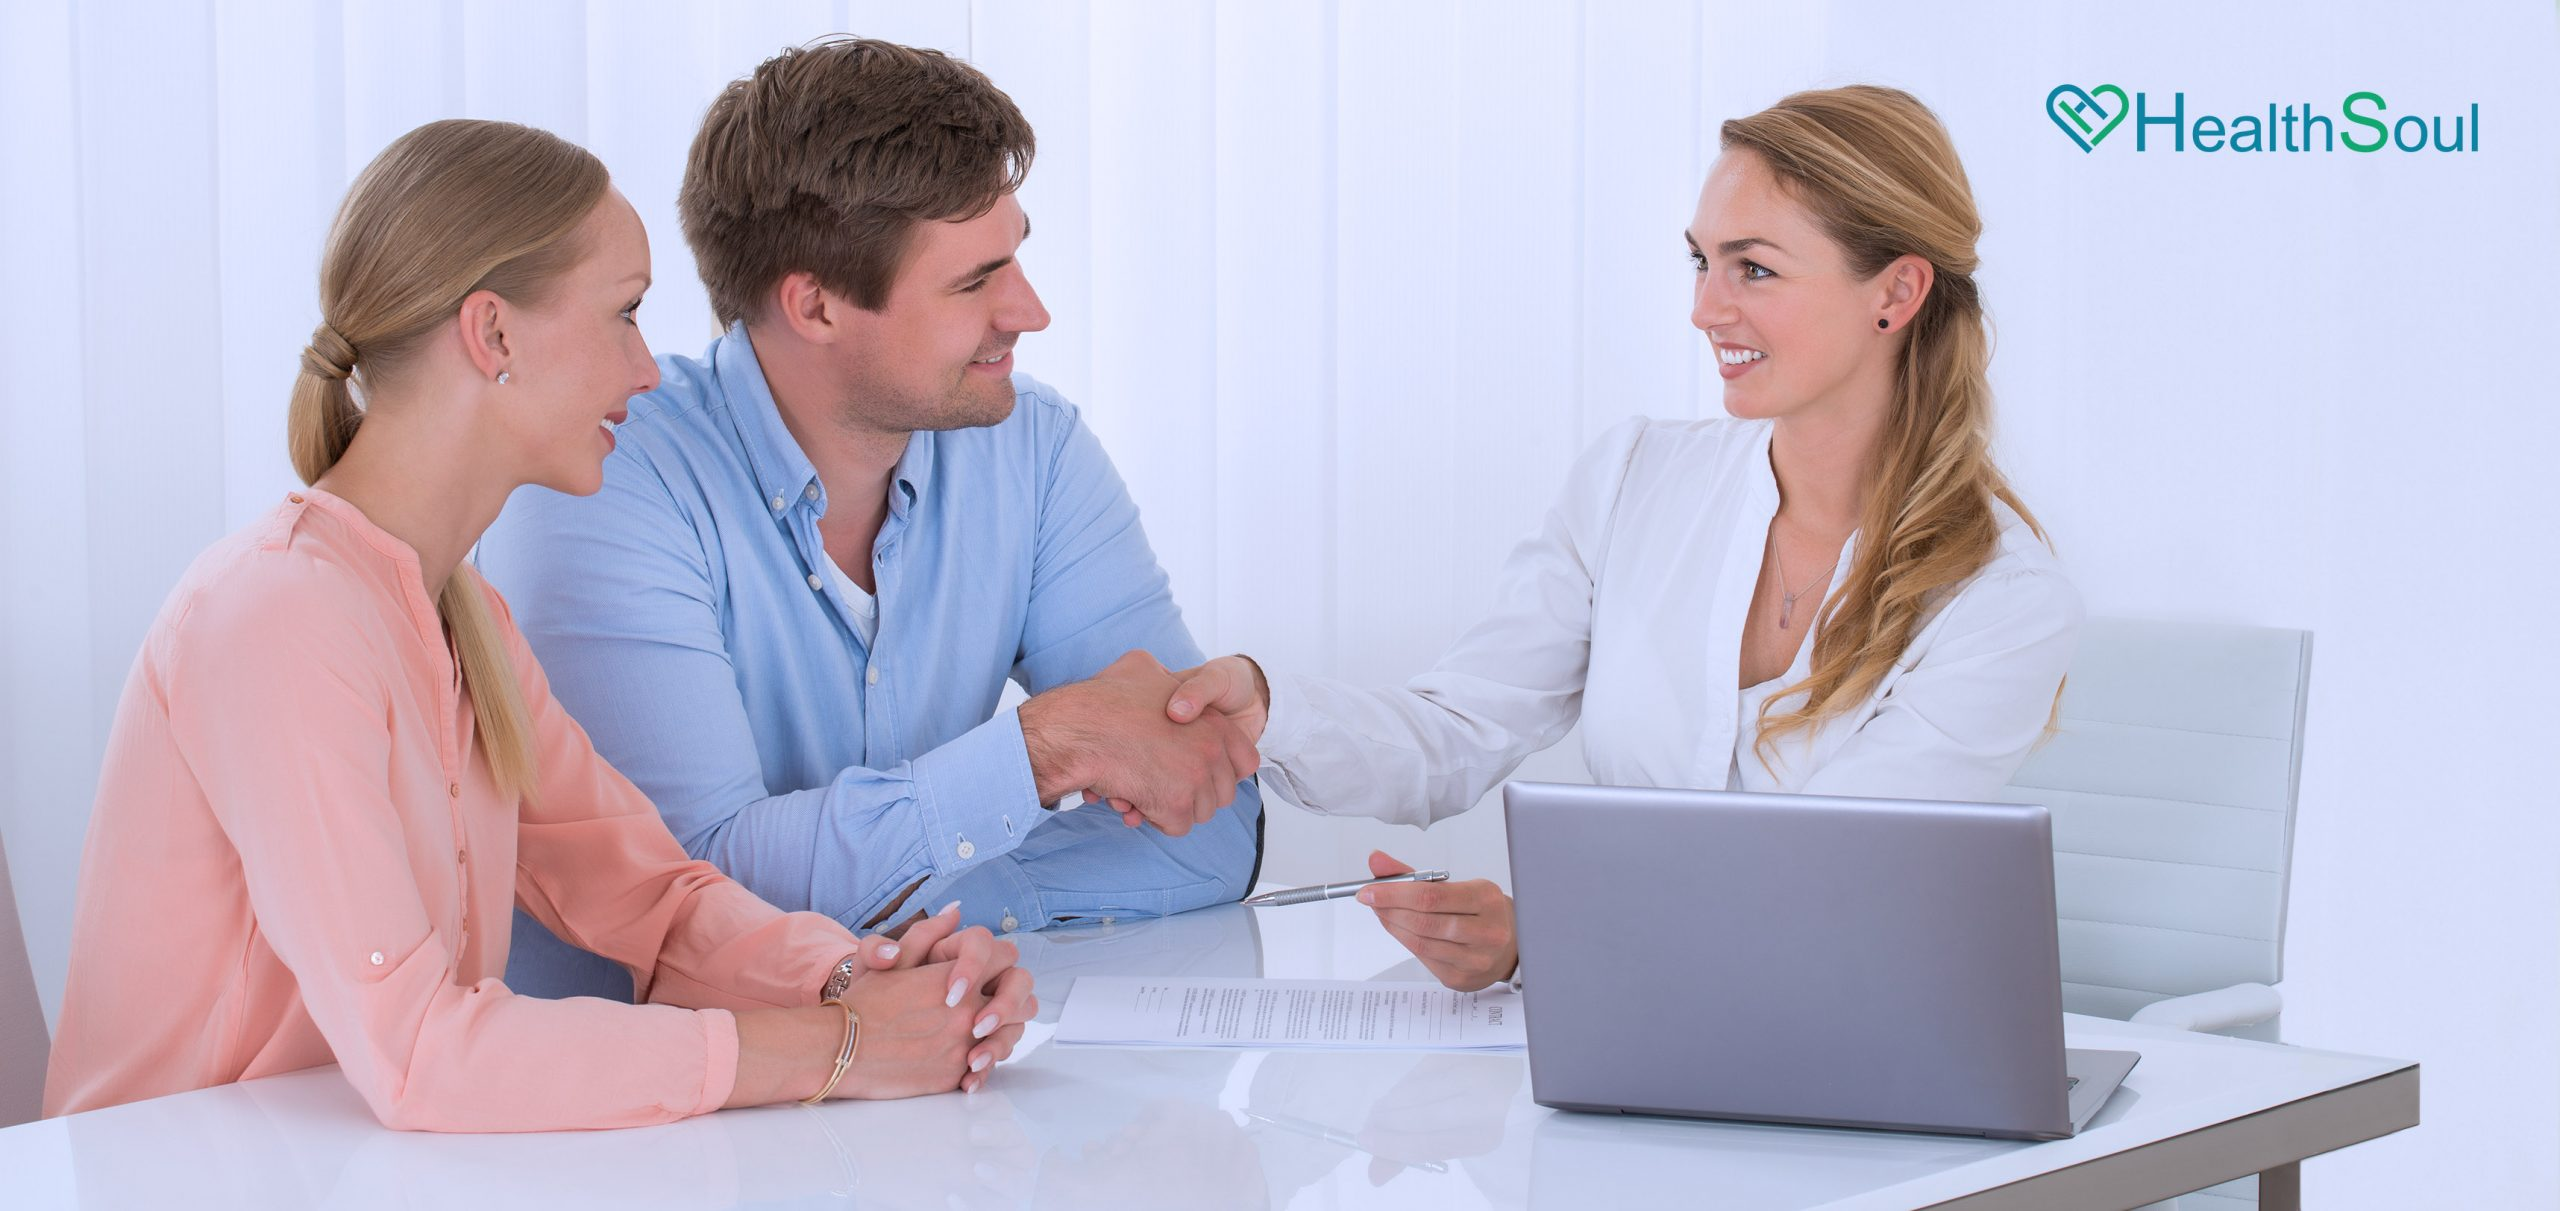 Planning to Buy Life Insurance | HealthSoul